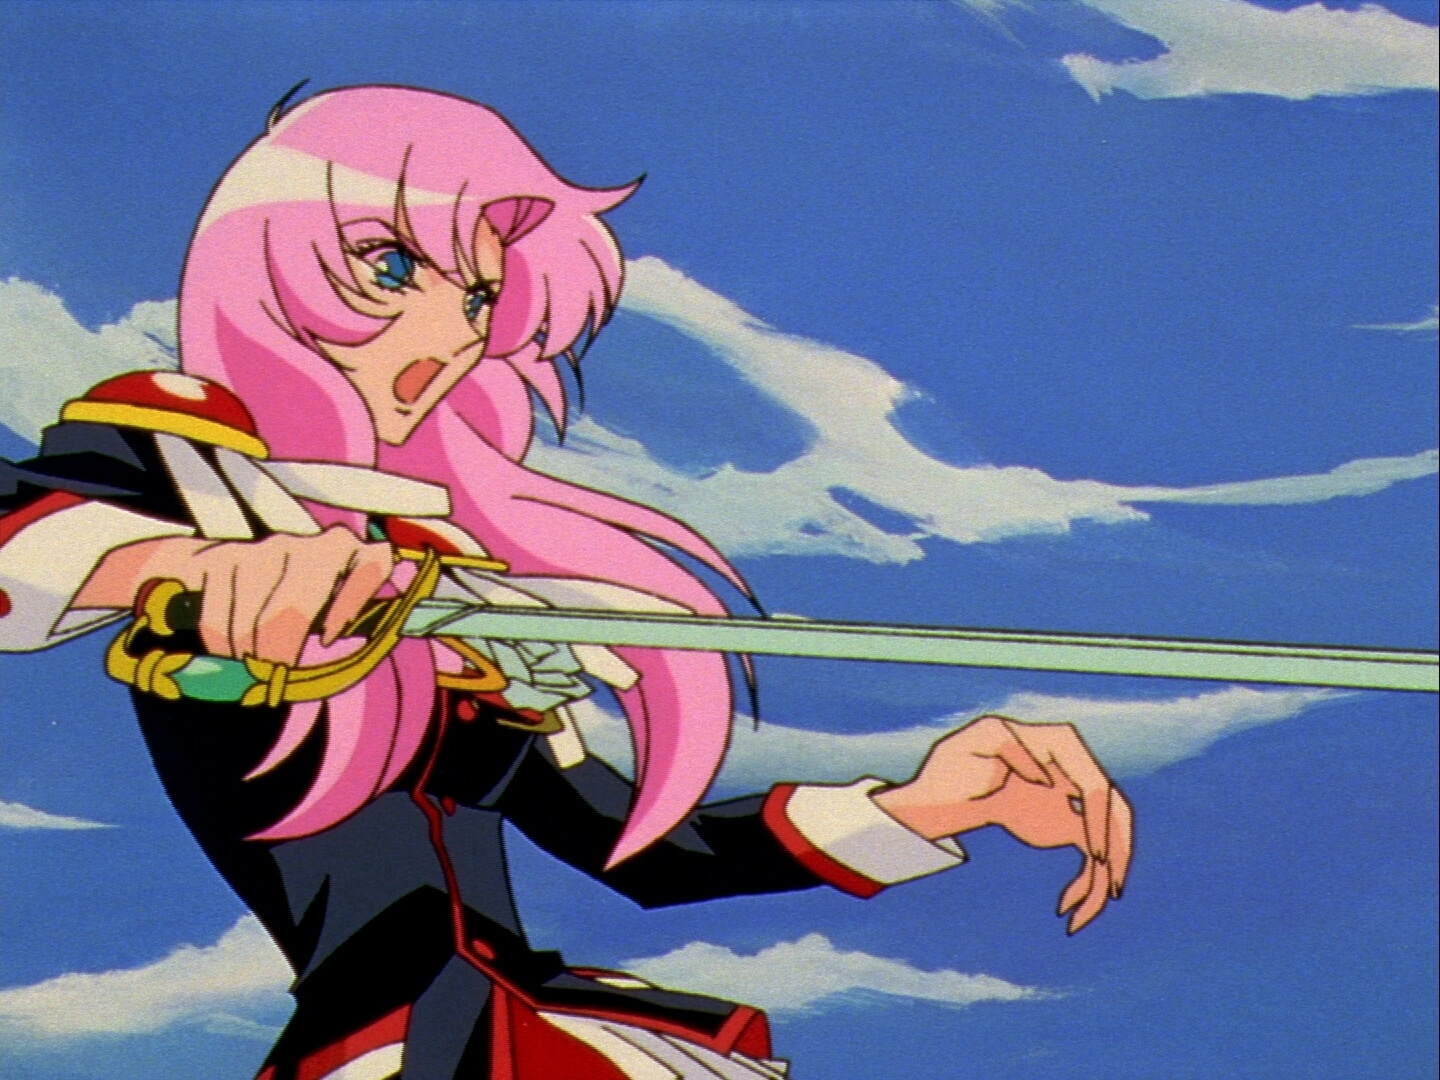 Utena from Revolutionary Girl Utena wielding a sword during a duel, similar to several scenes in Steven Universe.